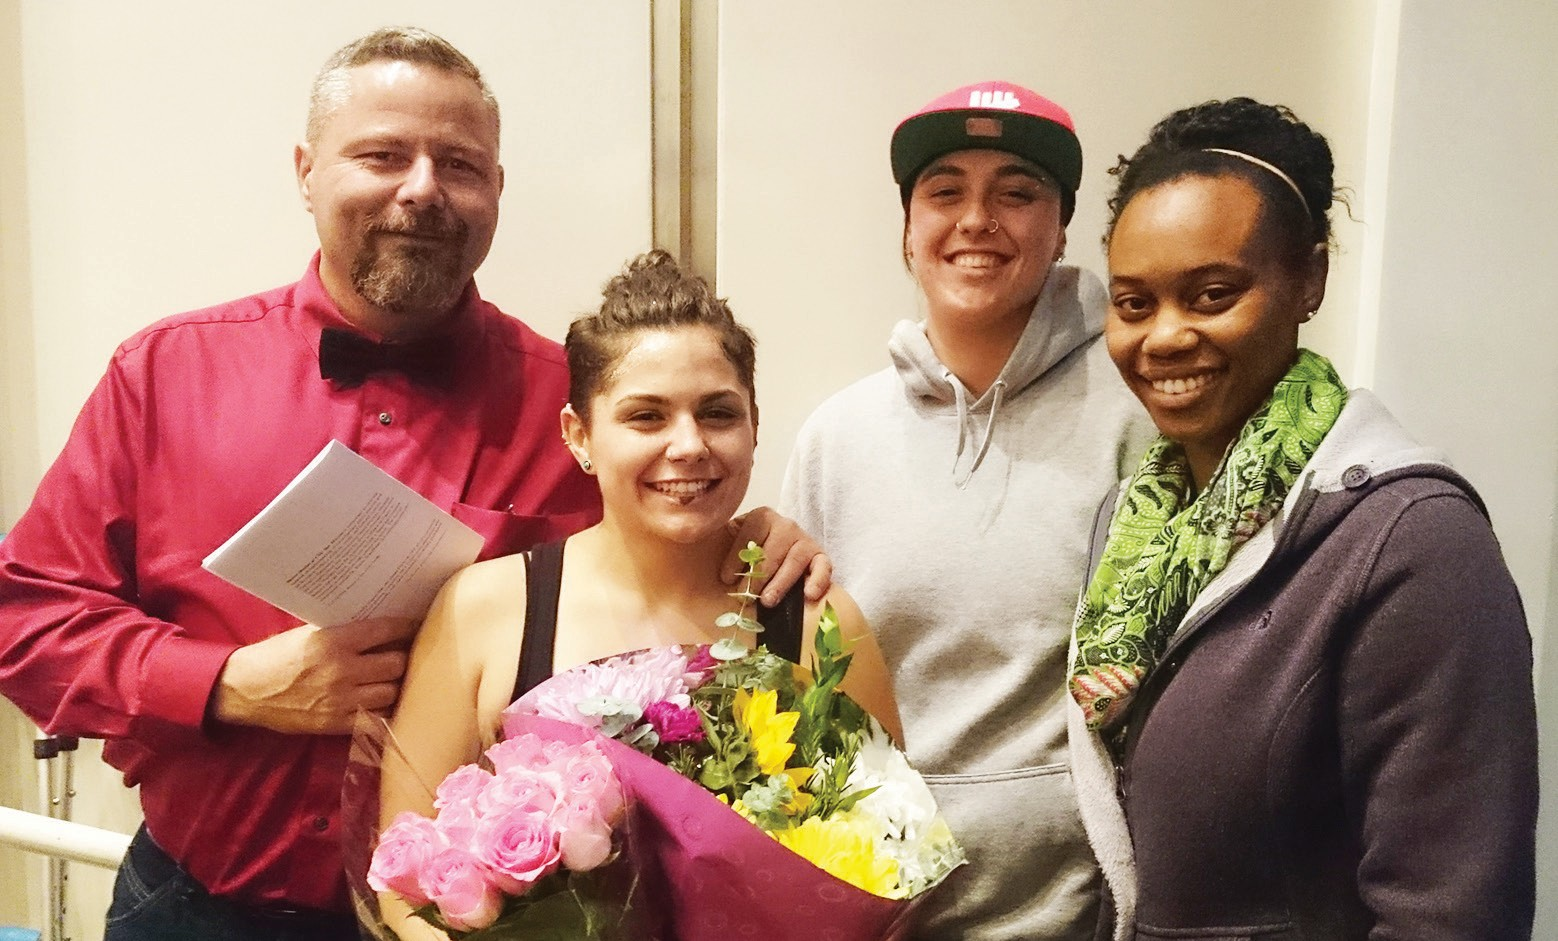 Escondido resident Cierra Potts with her dad and roommates as they show their appreciation for her talents with bouquets of flowers.